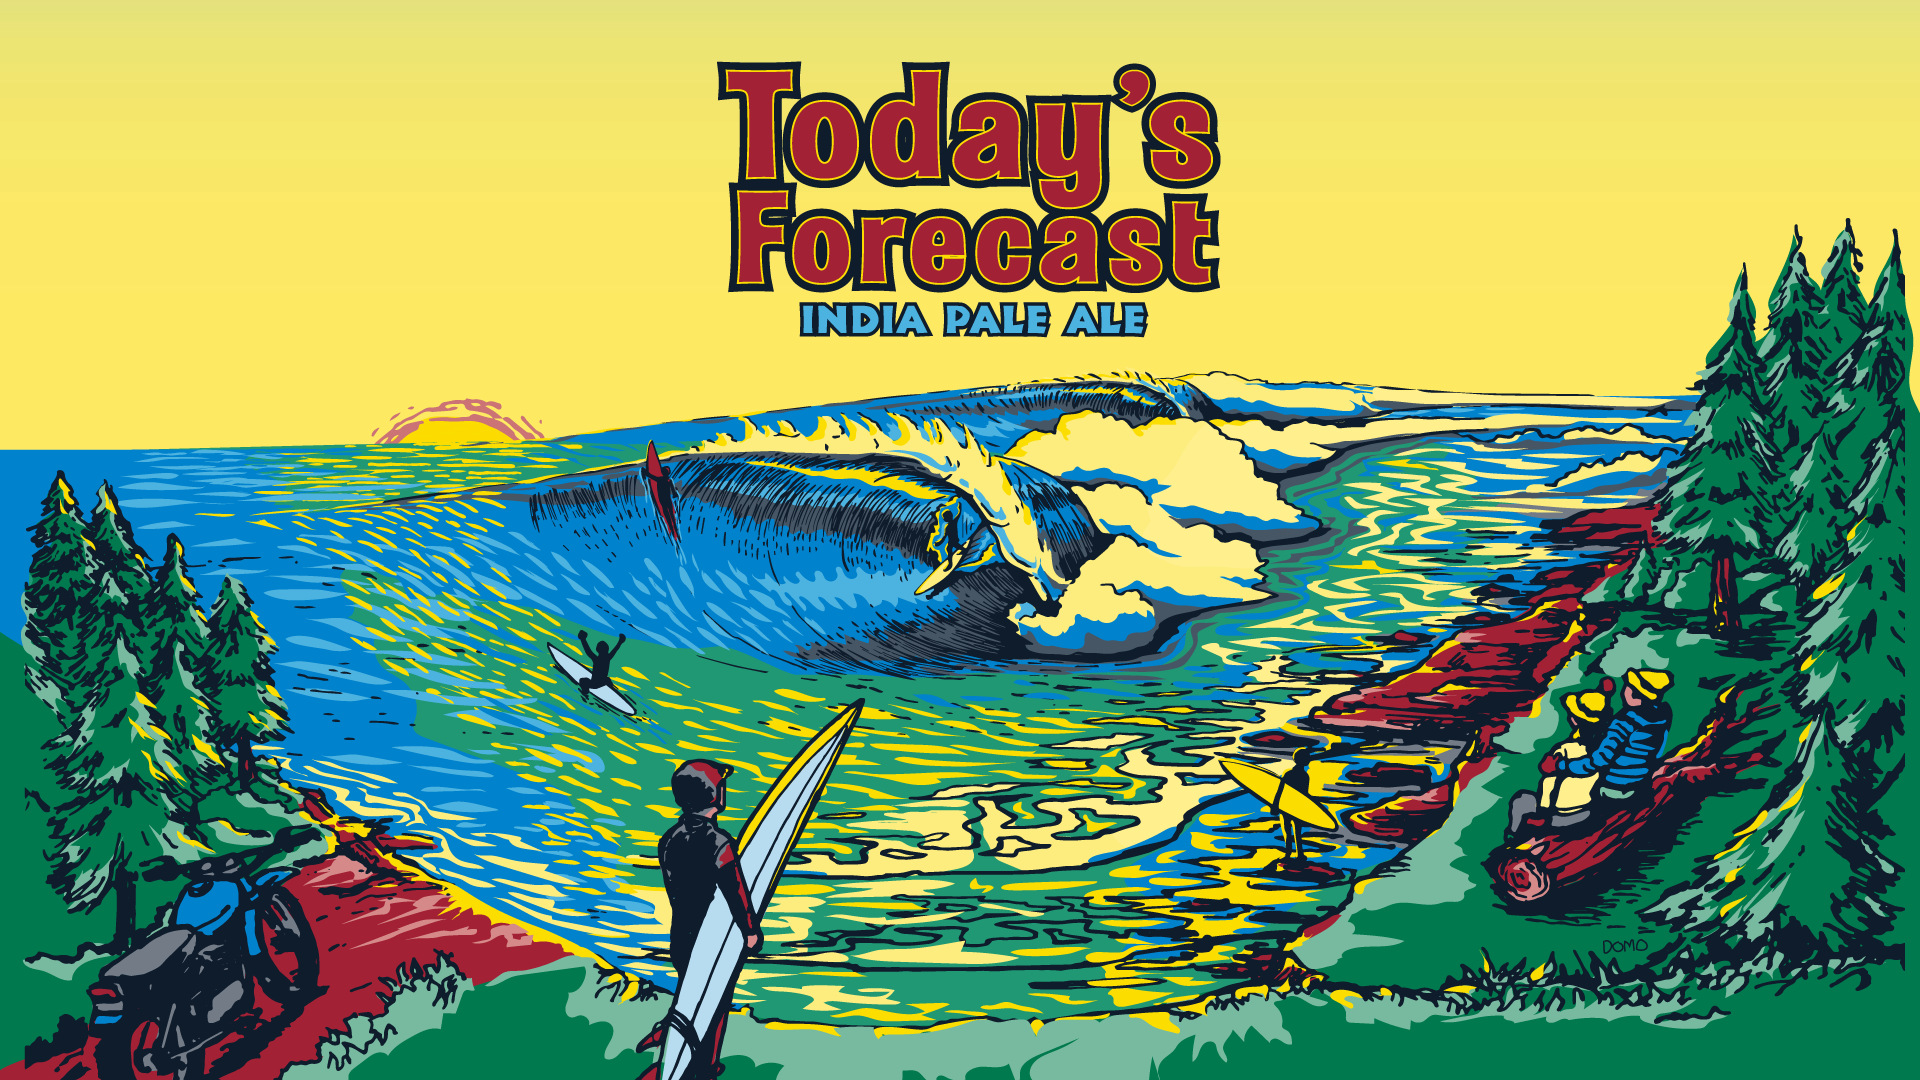 Today's Forecast Can Release